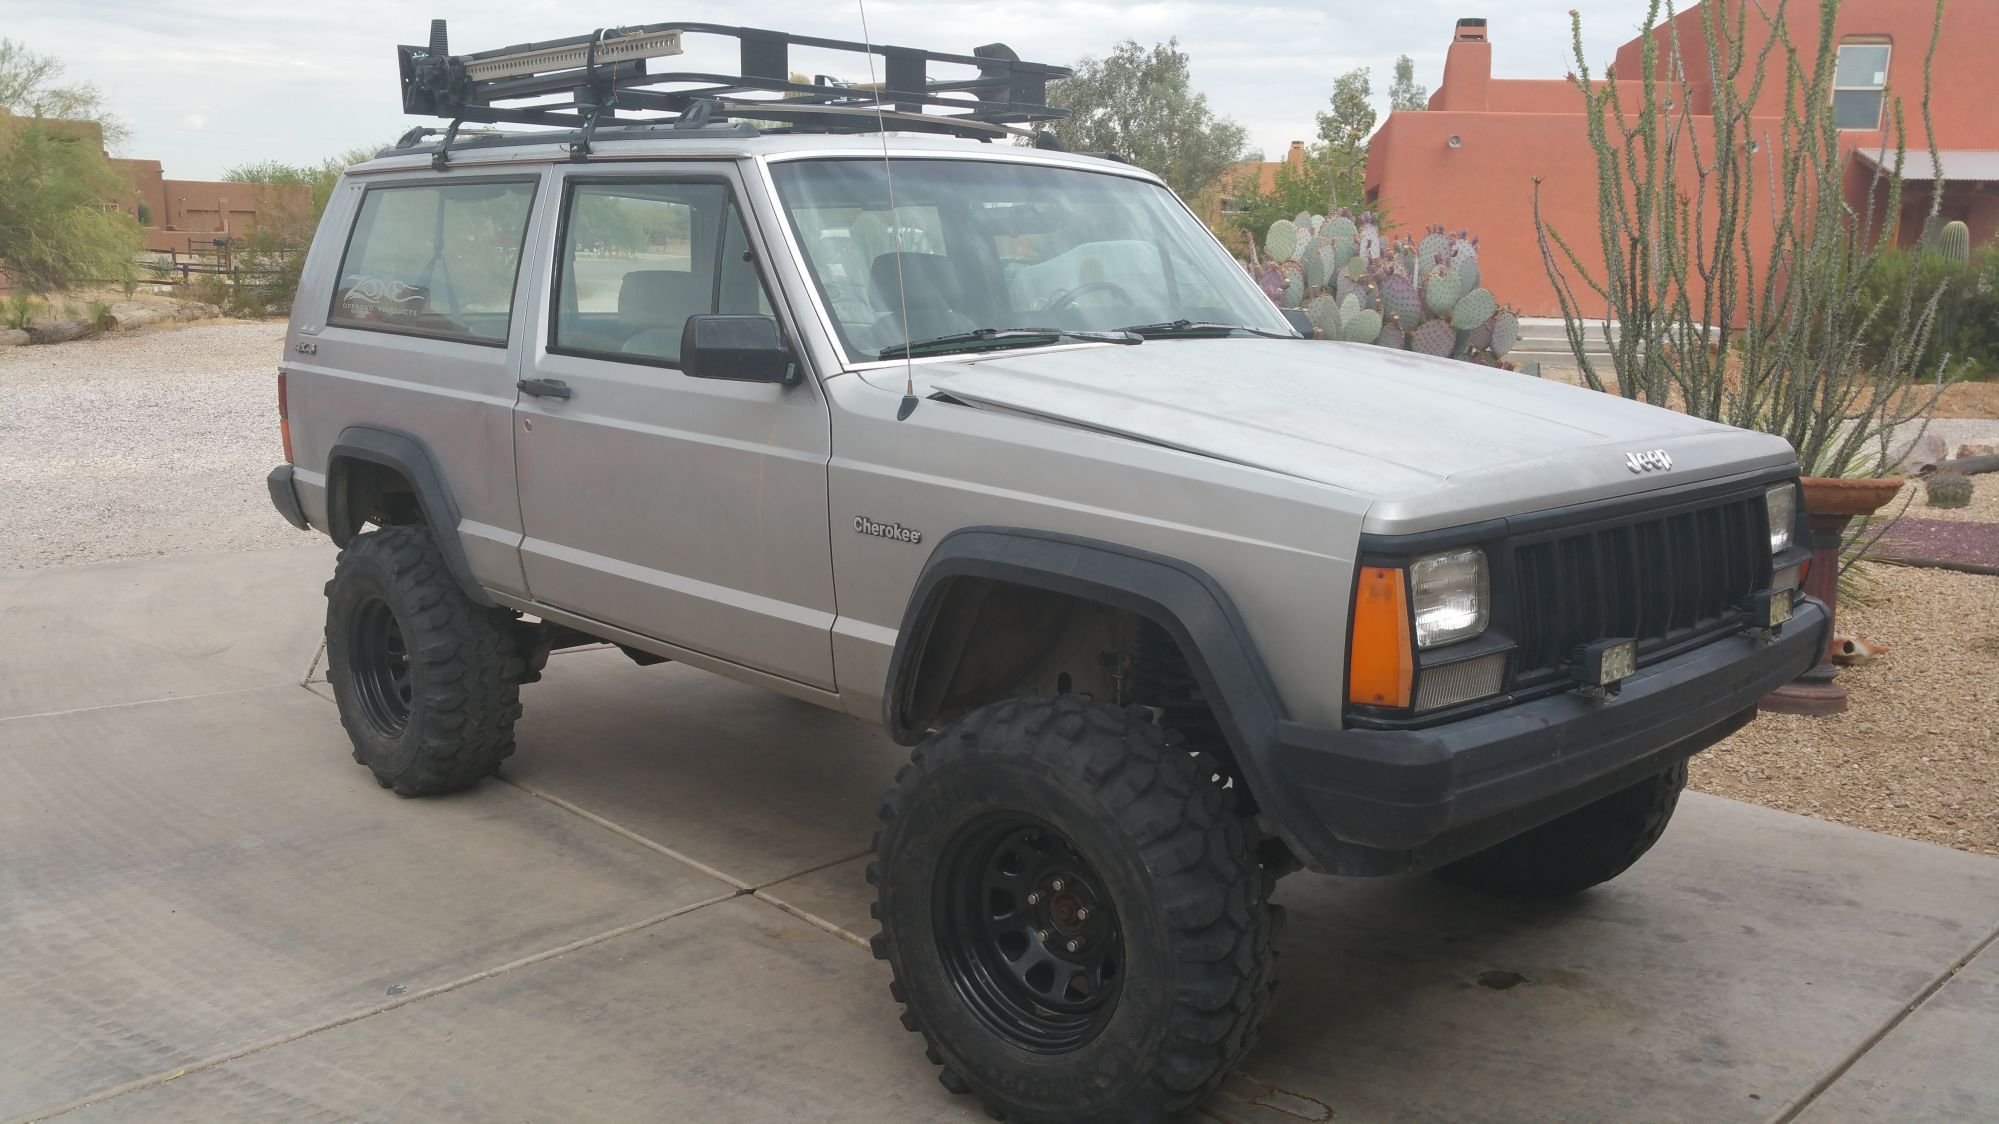 2 door cherokee club - page 73 - jeep cherokee forum | jeep xj